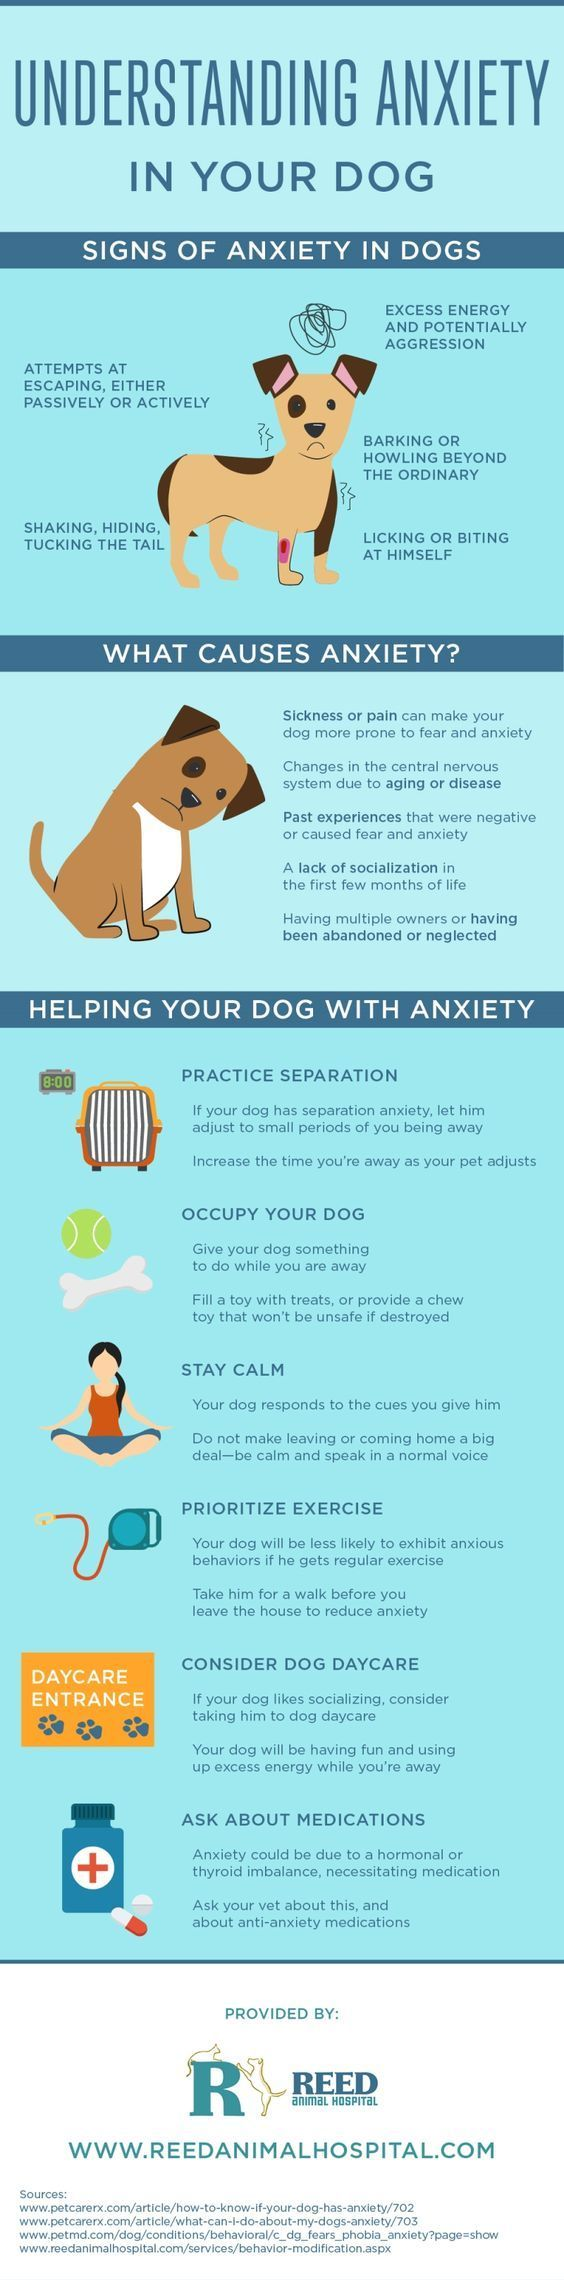 Dealing with canine anxiety? Find out more about the symptoms and potential cures. * You can find more details by visiting the image link. #DogTrainingTips via @KaufmannsPuppy